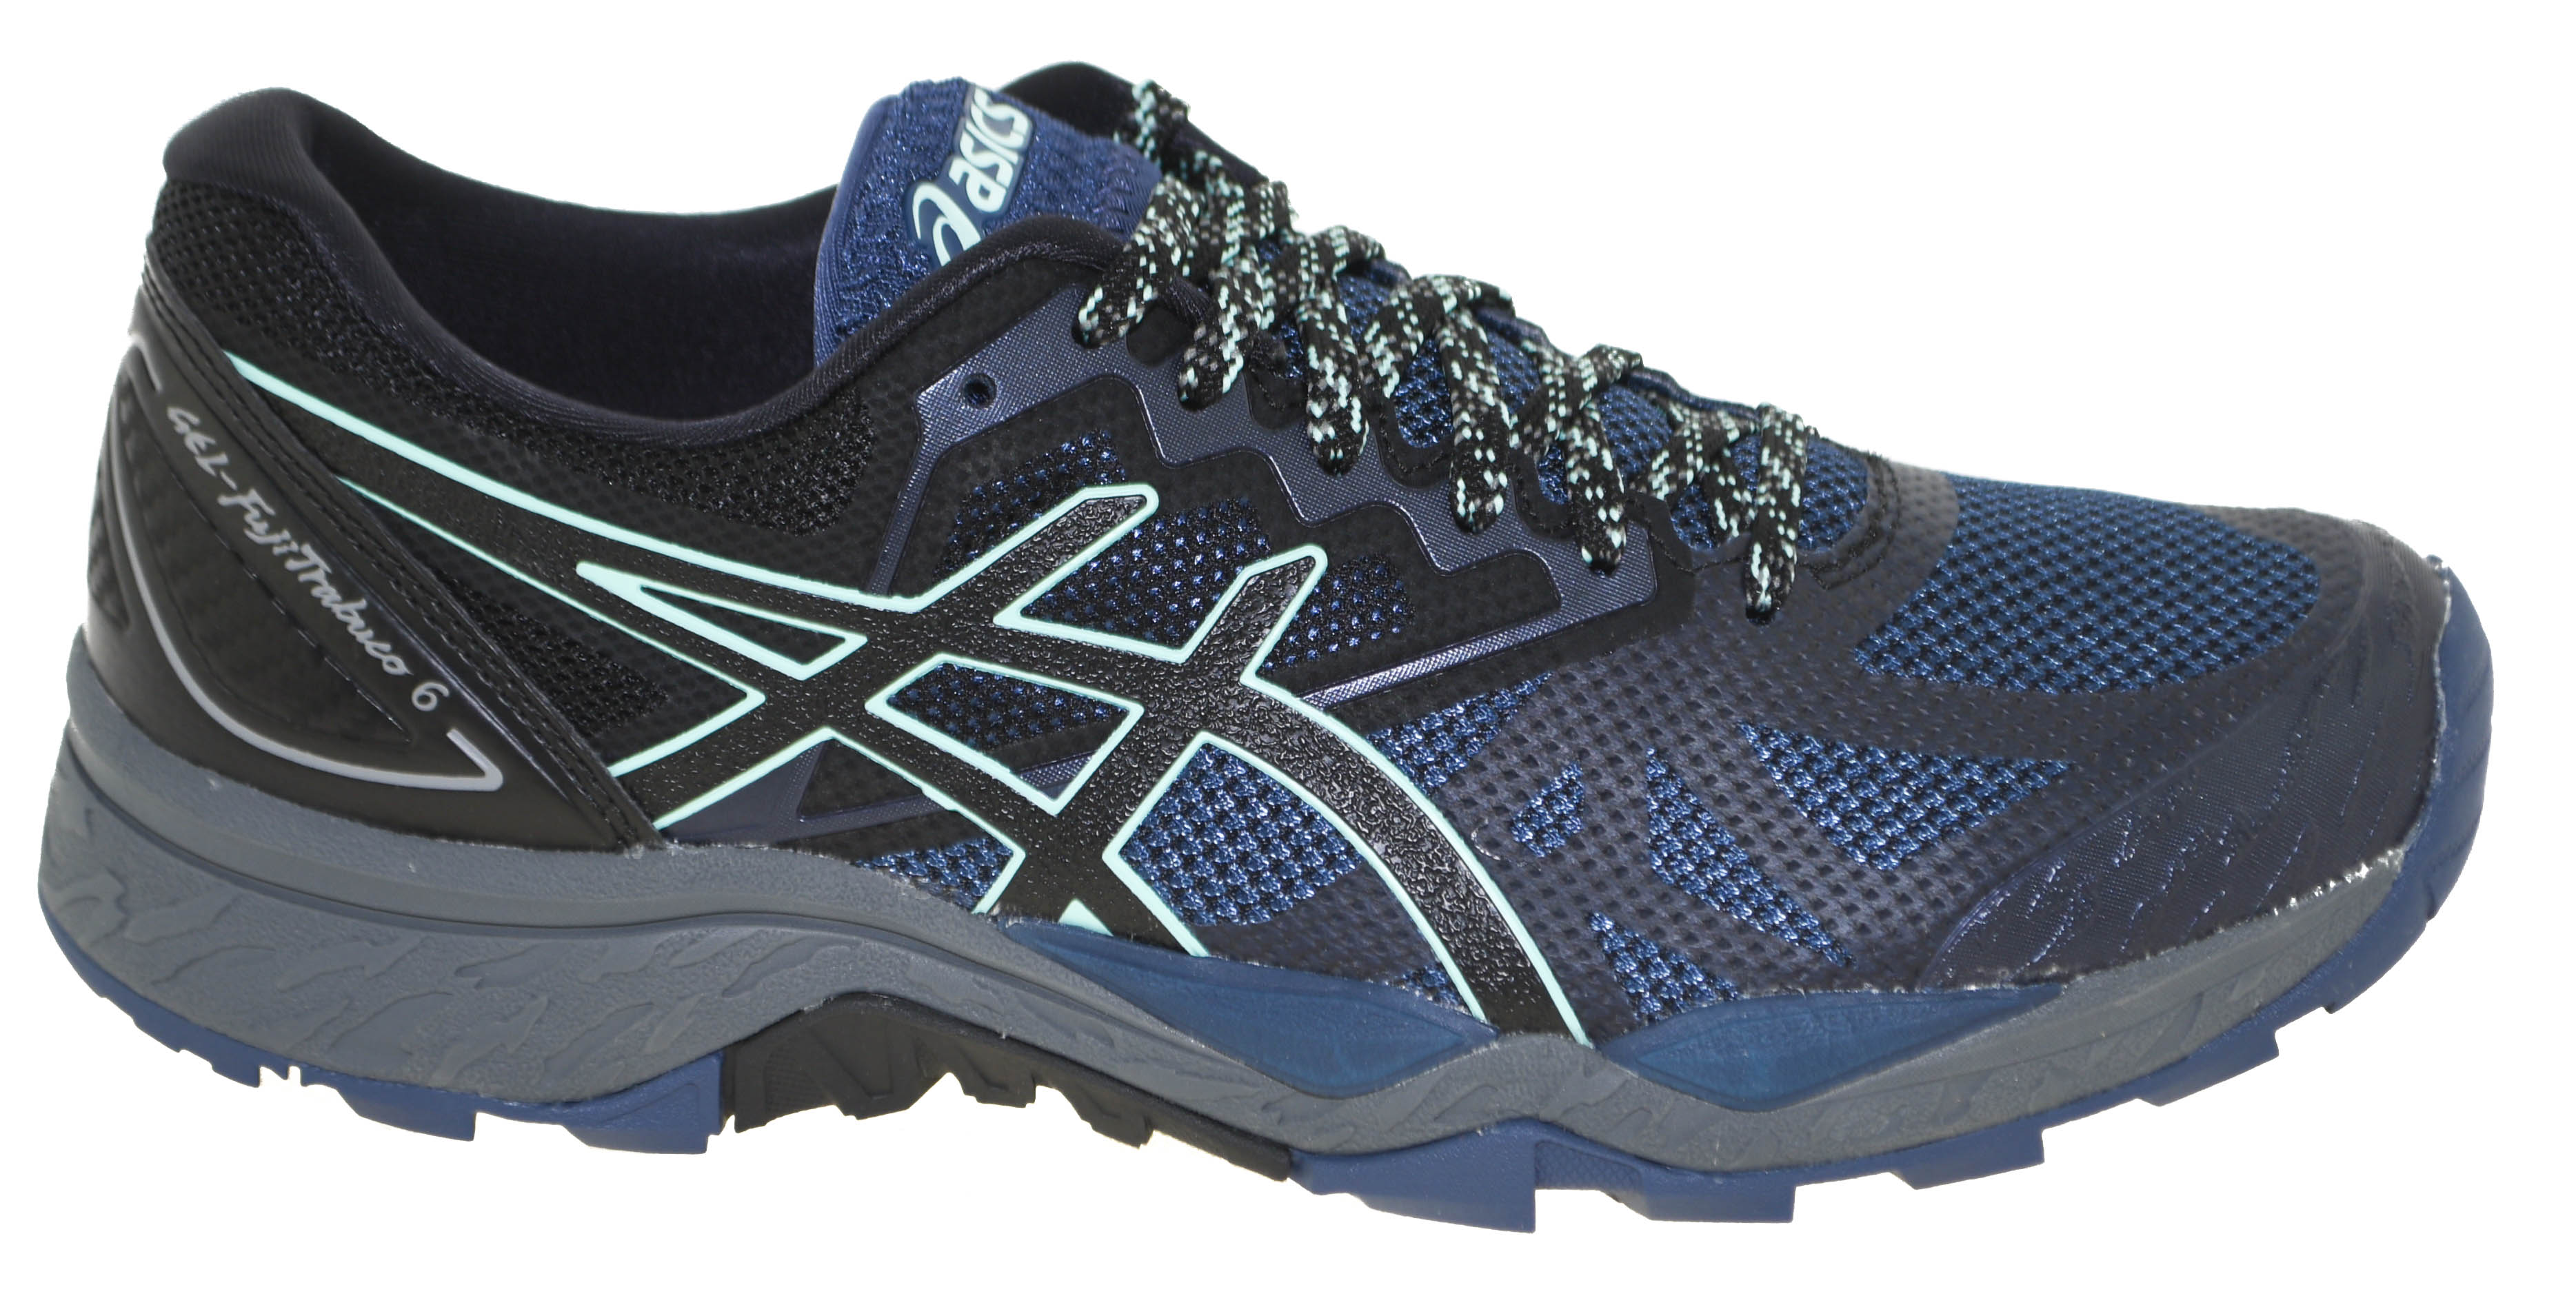 asics gel-fujitrabuco 6 running shoes